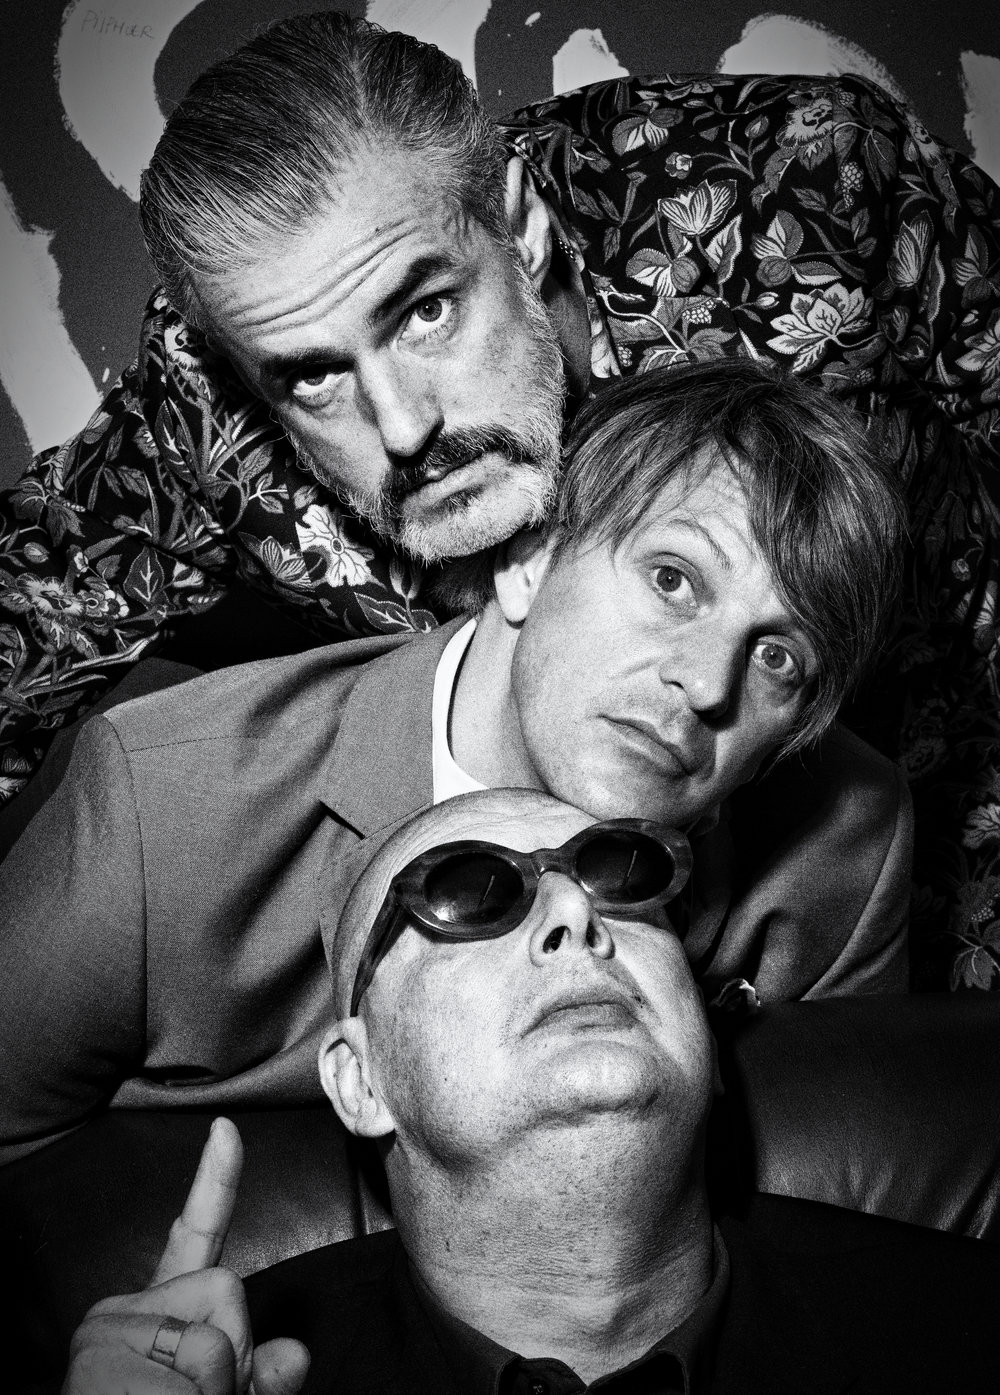 Triggerfinger for LXRY-magazine